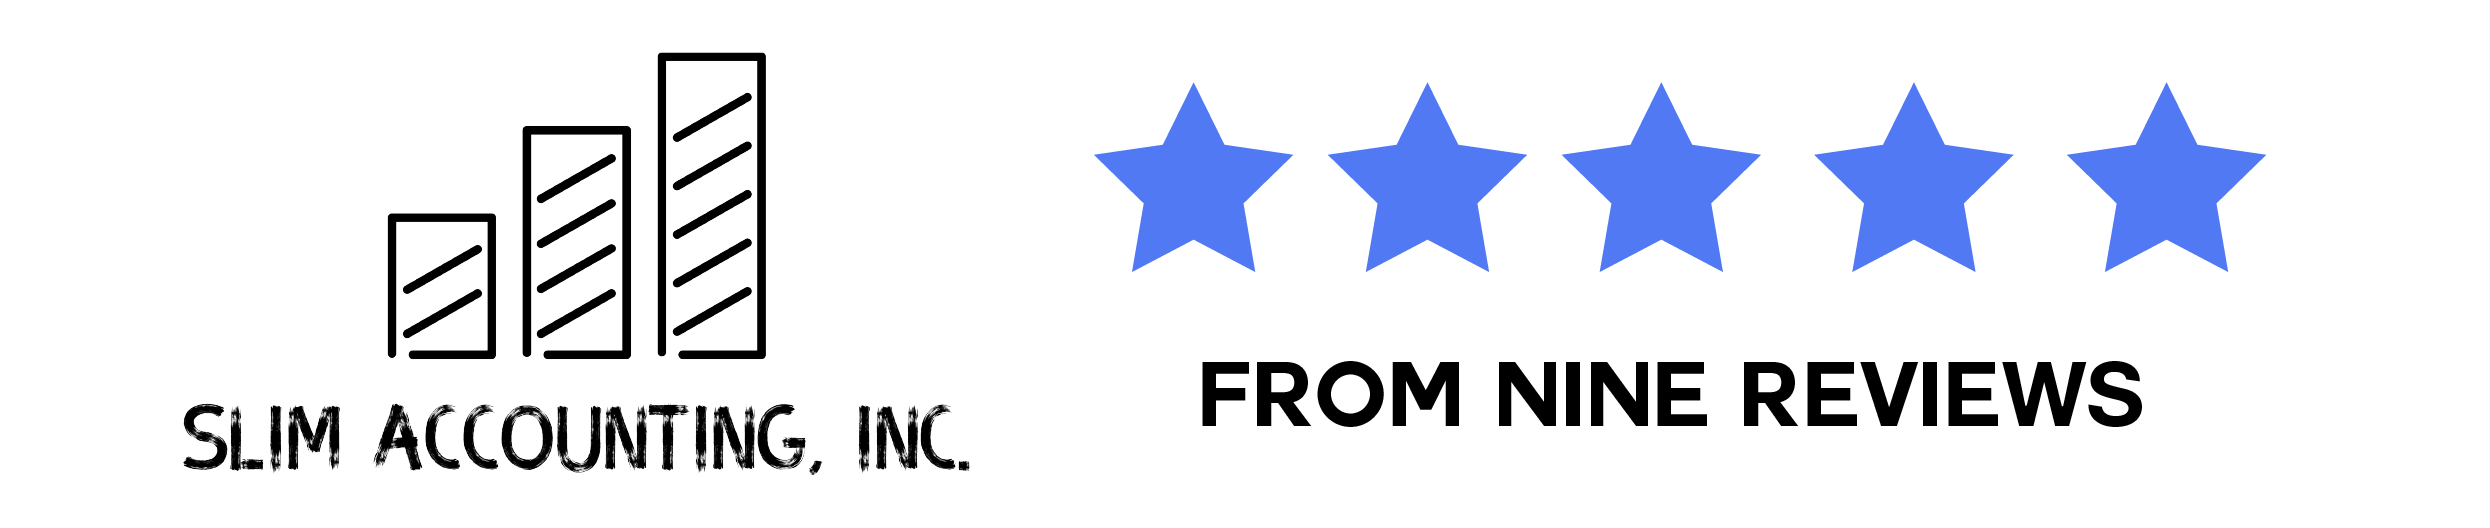 five star review slide.png